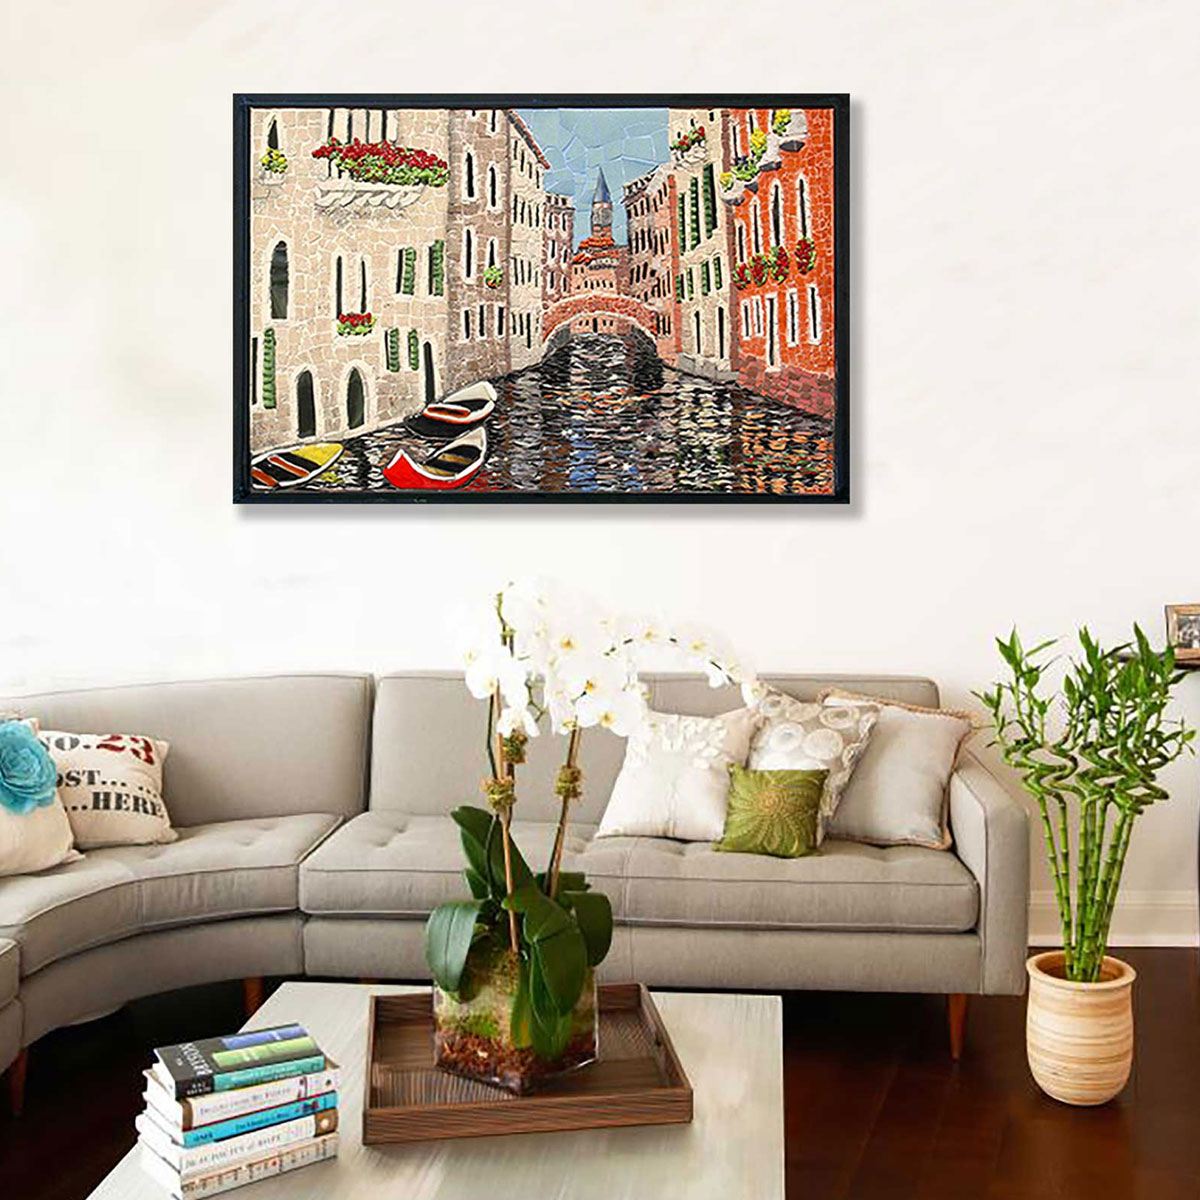 Sarah-Pryke---Venice-at-Home